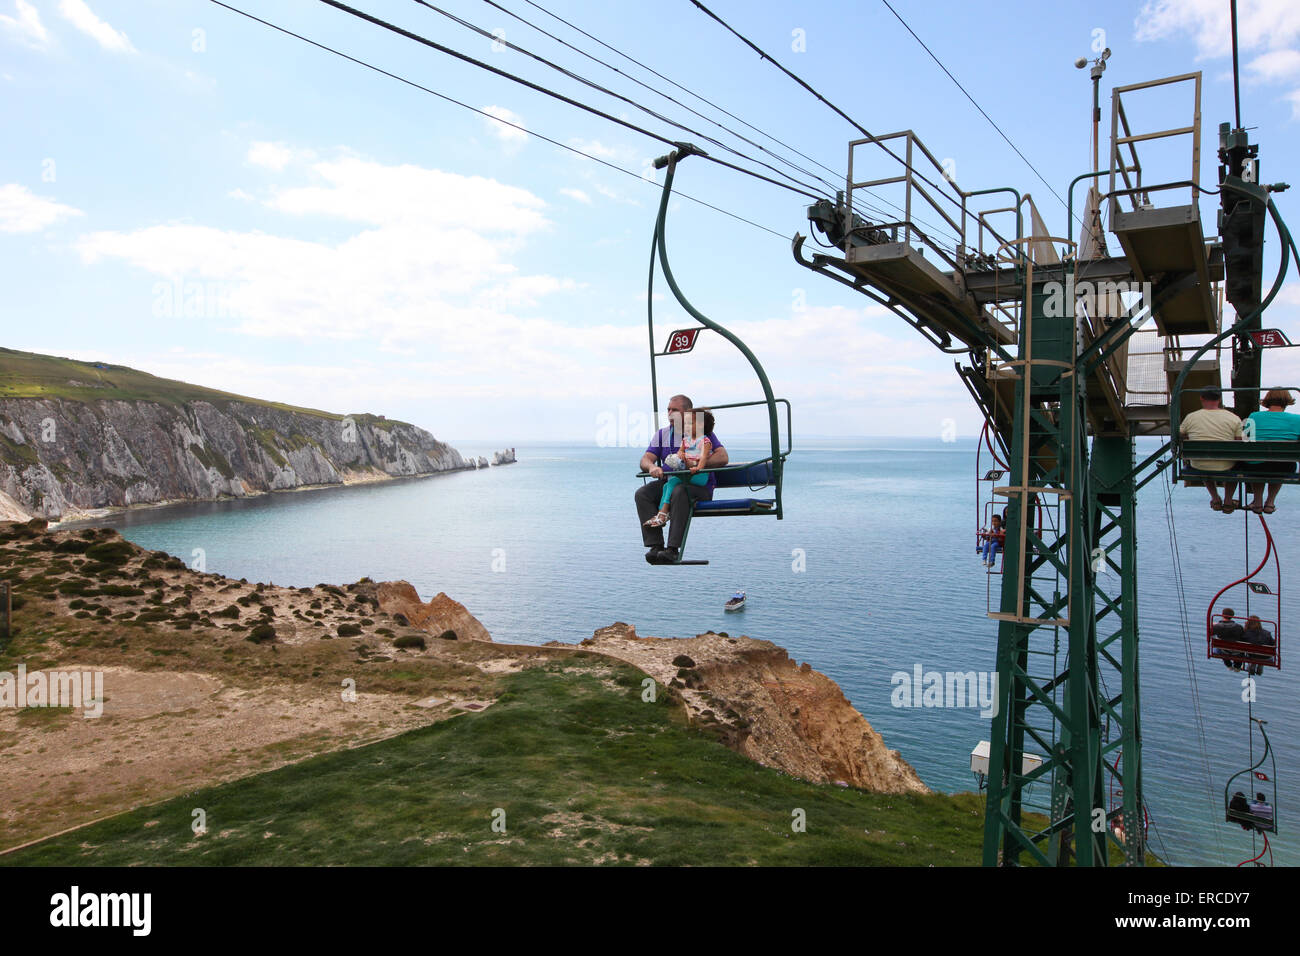 Chairlift overlooking Alum Bay beach and The Needles on the Isle of Wight UK - Stock Image